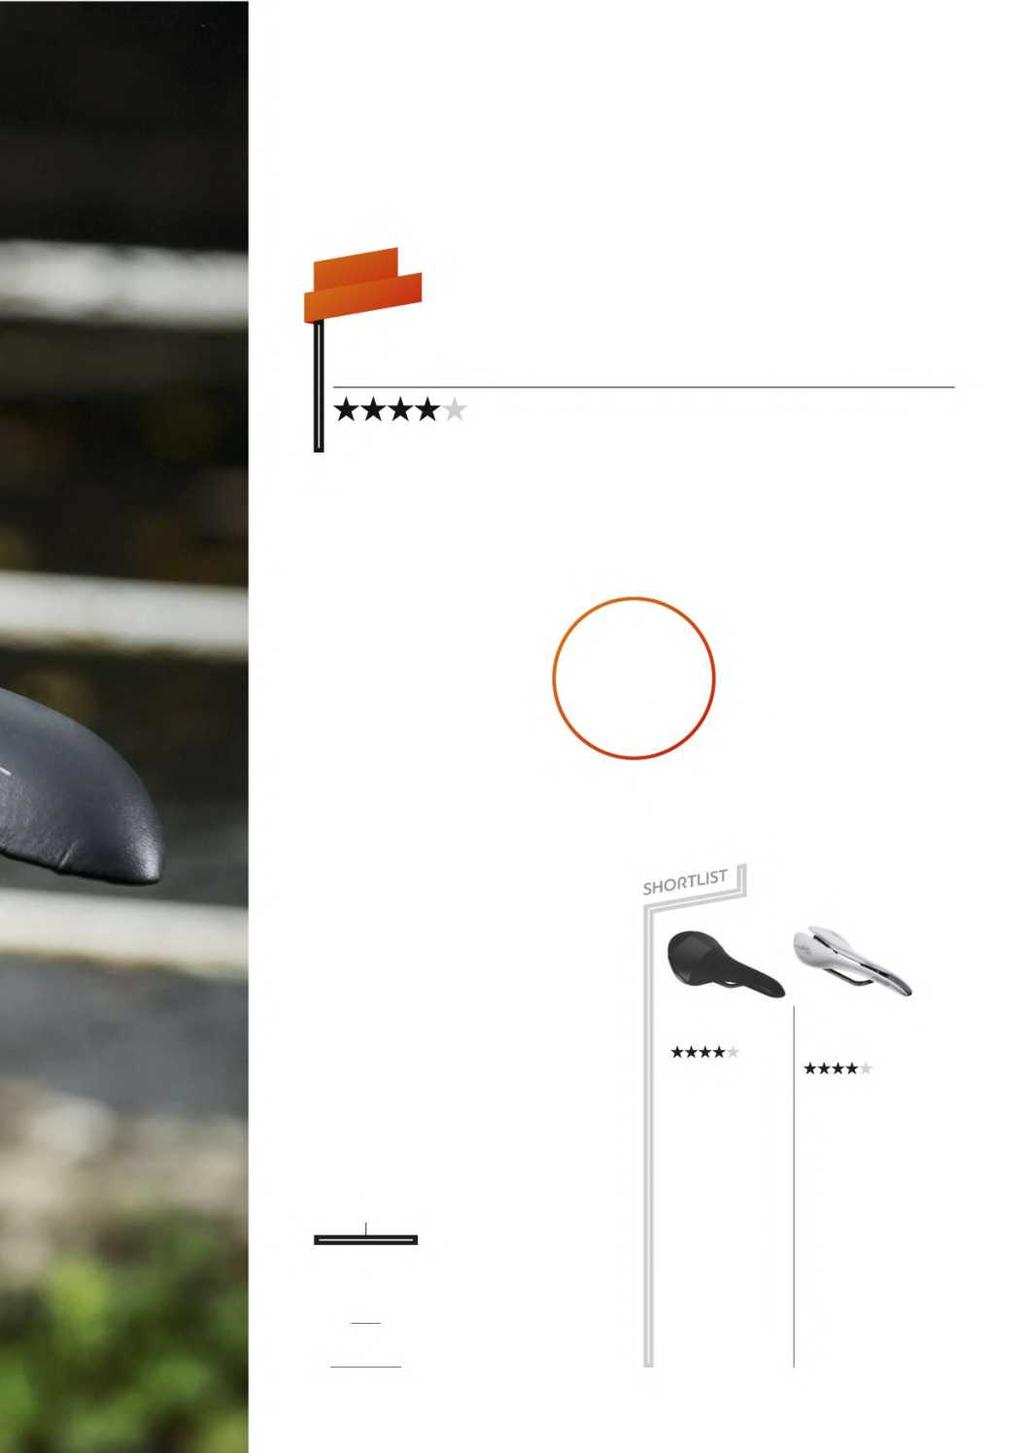 14d5235a0f MOST WANTED FIZIK ALIANTE 00 279.99 The best-selling endurance saddle gets  another high-